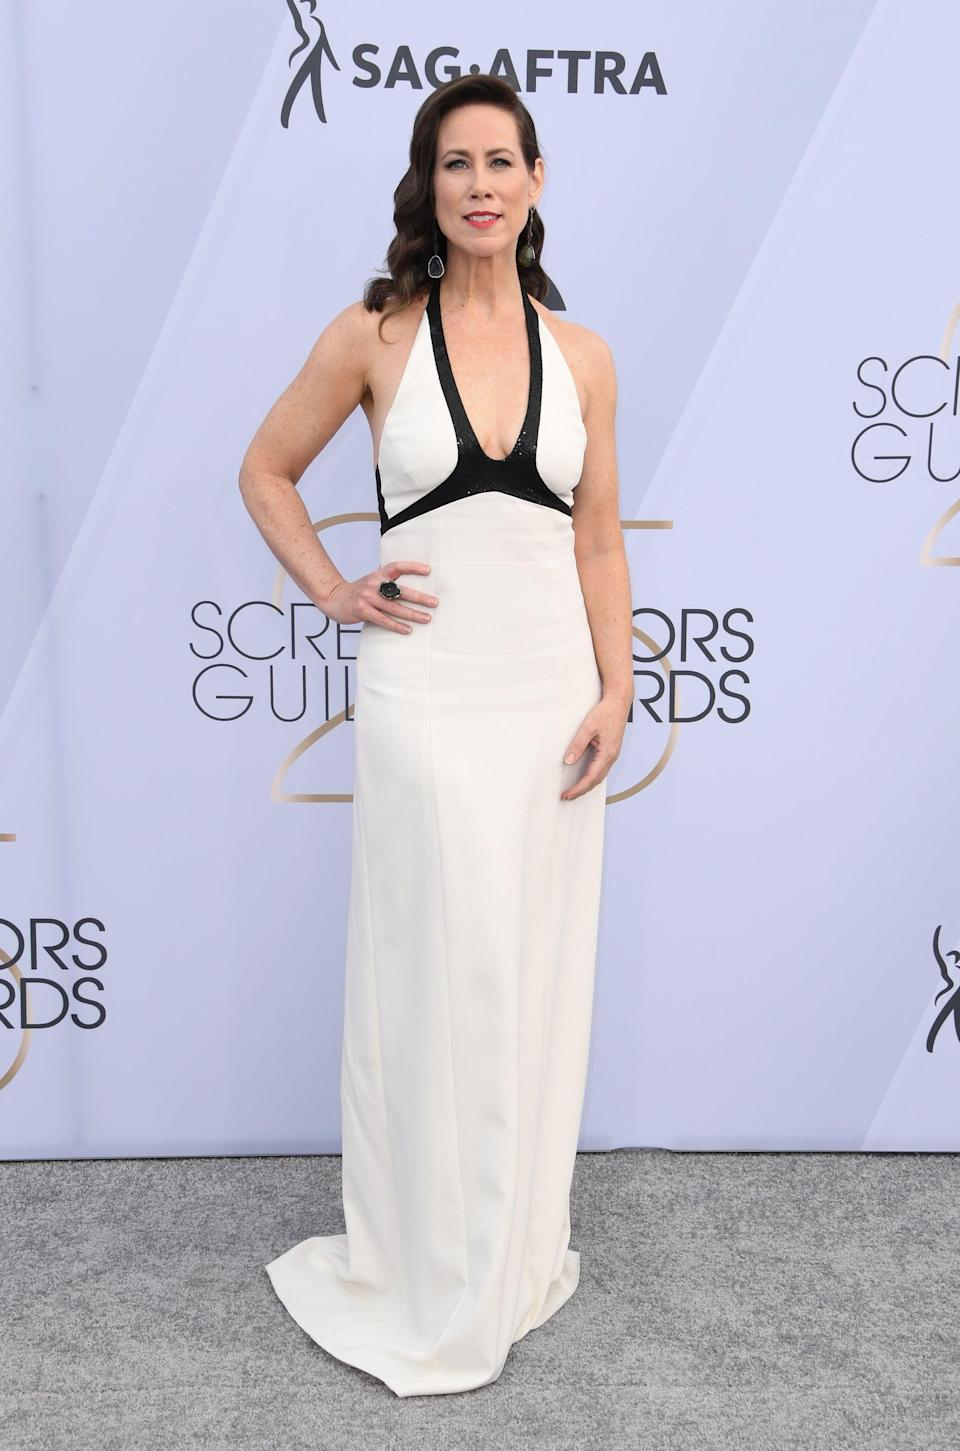 <p>Wearing a black and white Narciso Rodriguez gown, Stuart Weitzman shoes, and Kimberly McDonald jewelry.</p>